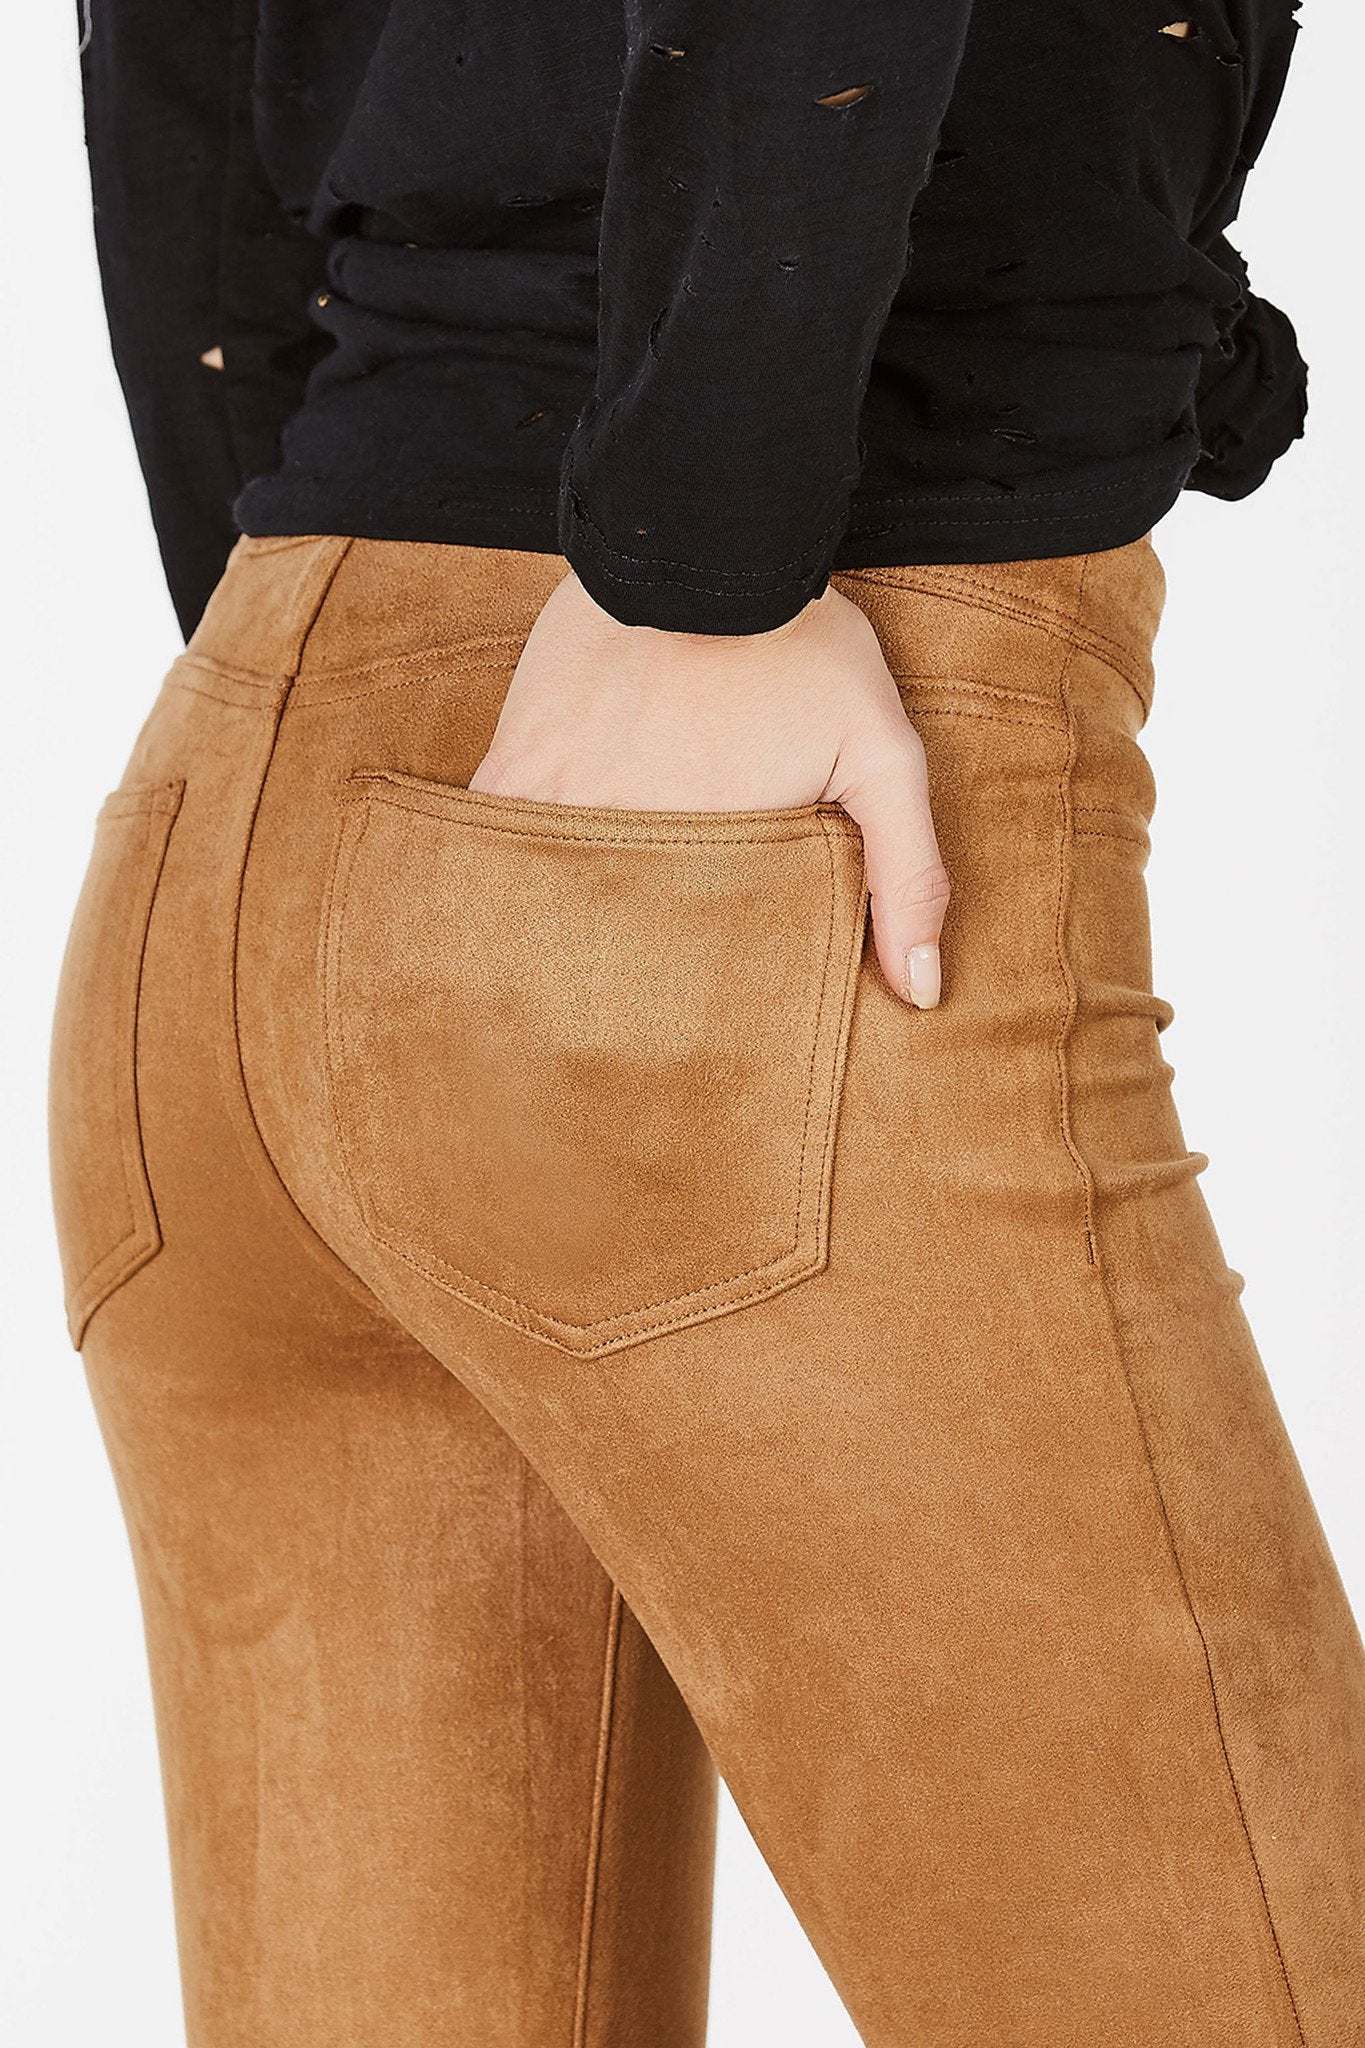 A super soft and stretchy pair of pants that feel like comfy leggings! Trendy suede finish with faux pocket and zip detailing. Slim fit with a versatile mid-rise waist. Great to pair with a bodysuit and heeled booties for a casual chic evening look!